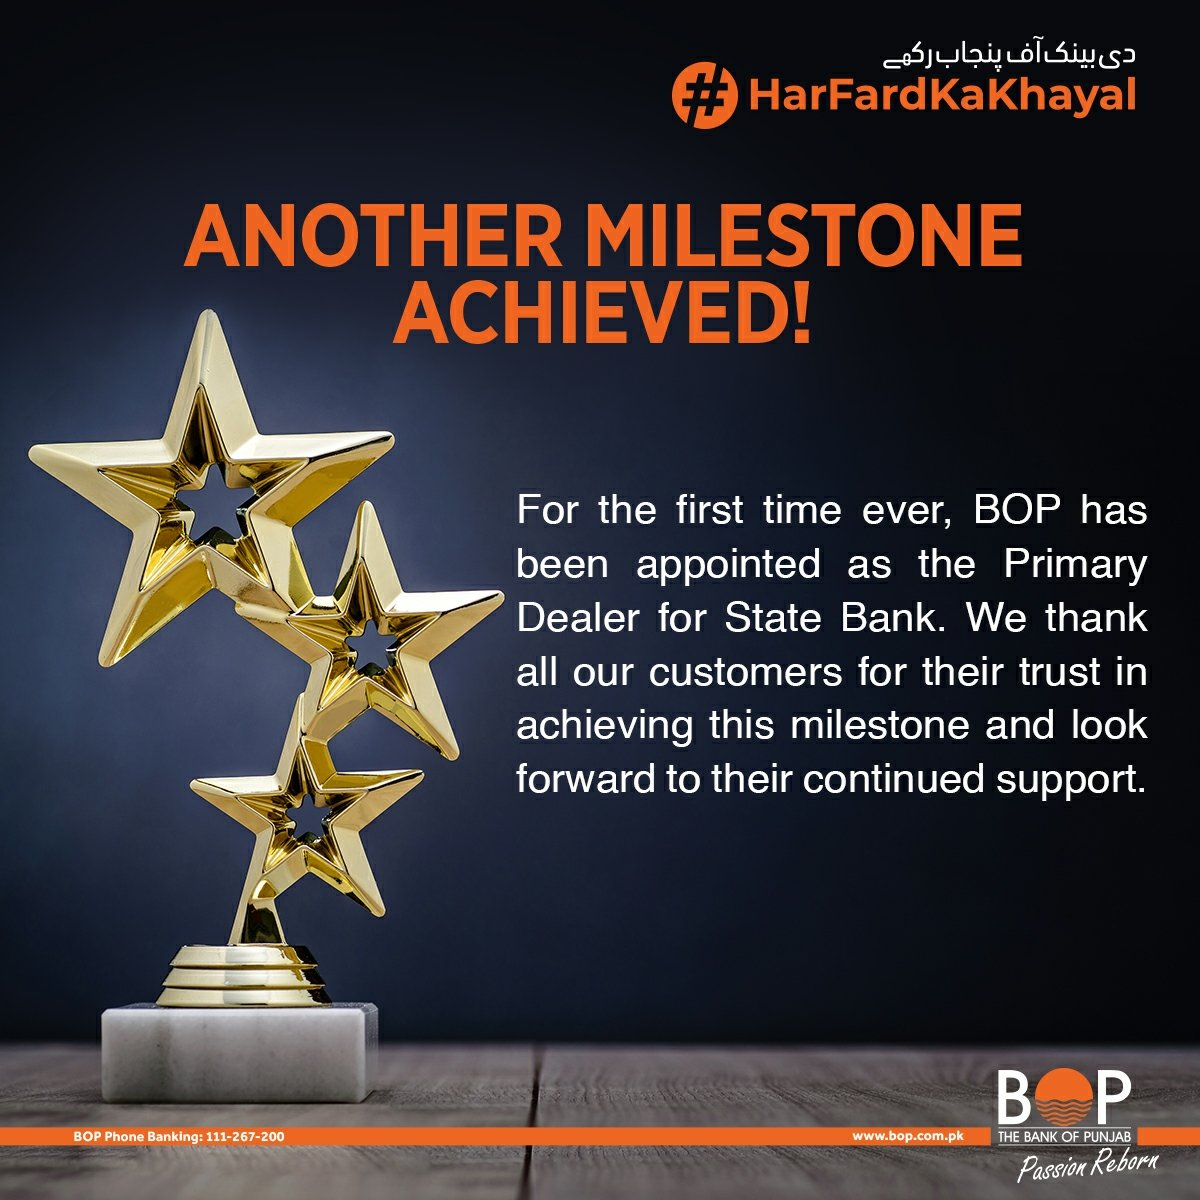 For the first time ever, BOP has been appointed as the Primary Dealer for @StateBank_Pak. We thank all our customers for their trust in achieving this milestone and look forward to their continued support. #BOP #TheBankOfPunjab #Milestone #Achievement #ThankYou #HarFardKaKhayal https://t.co/5IClDvFGyy